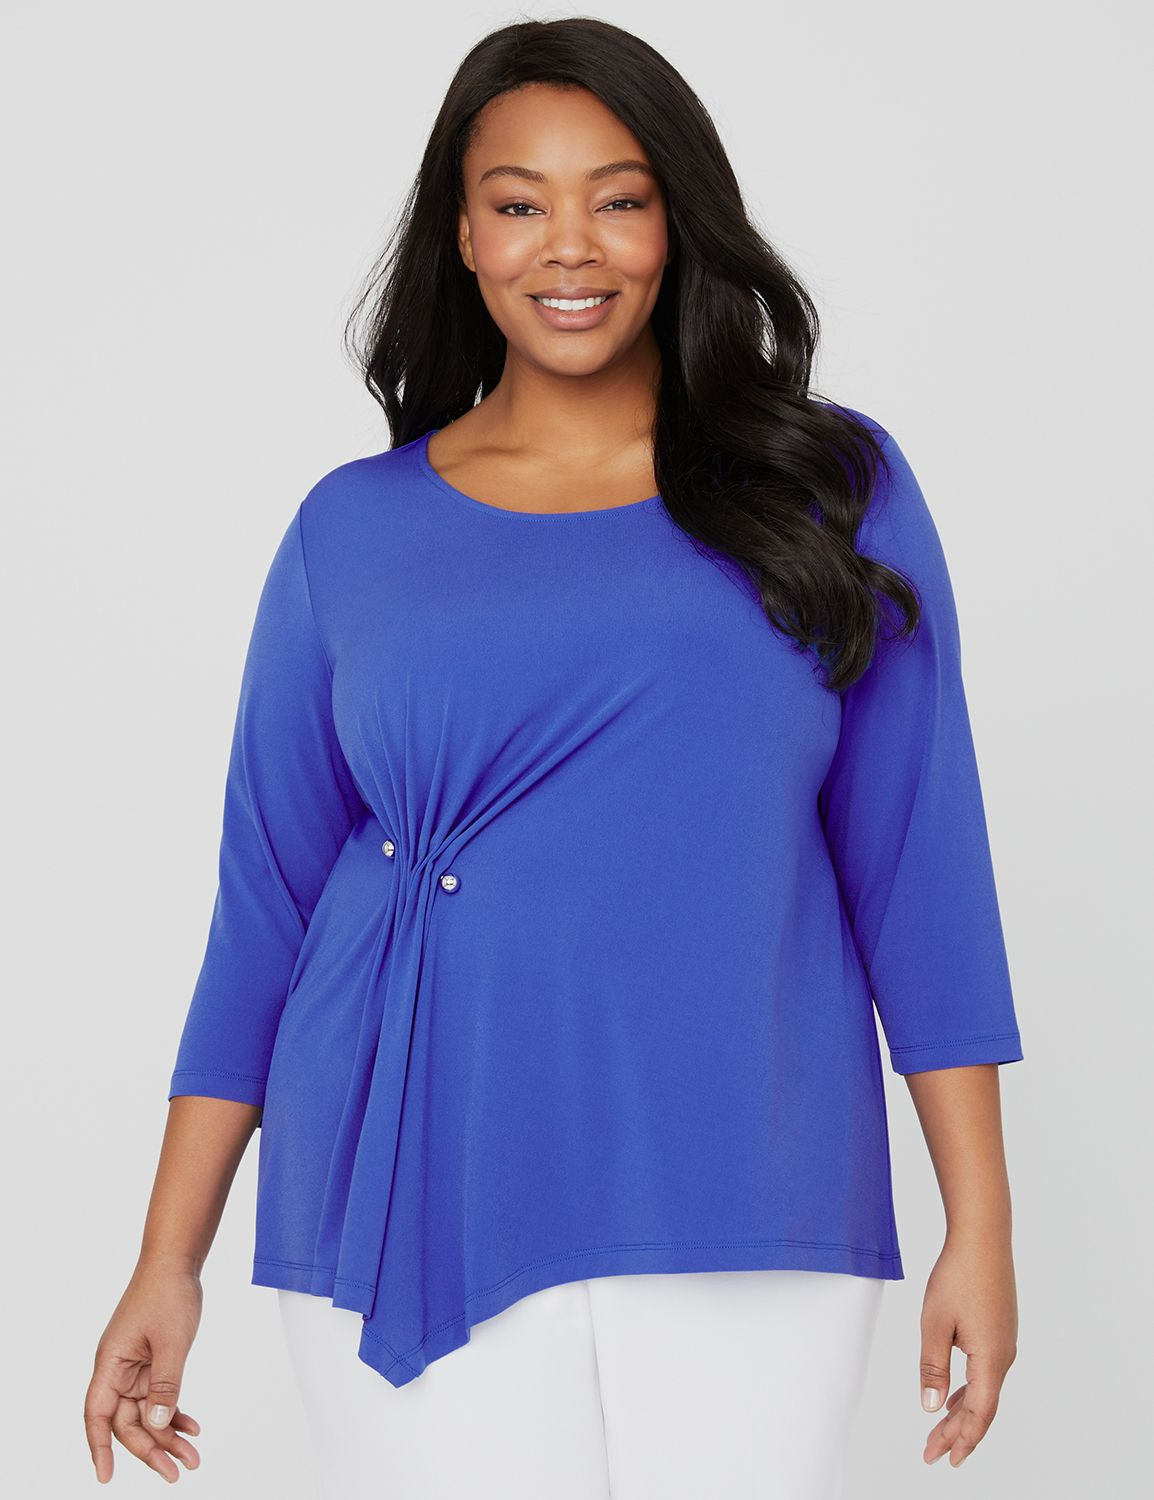 Black Label Blue Diamond Top 1090803 Asymmetrical Knit Top with MP-300102570